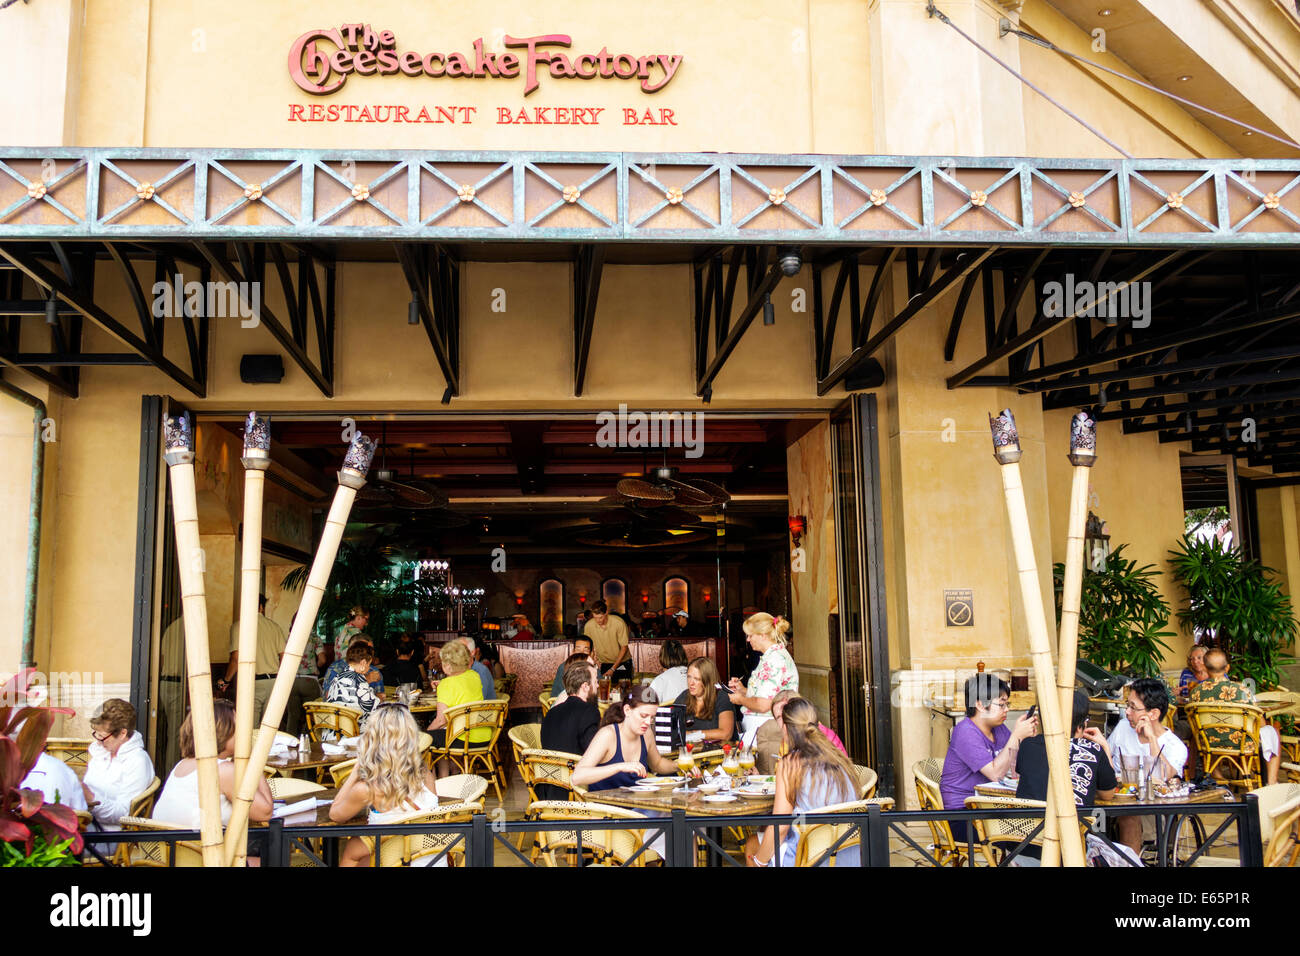 Cheesecake Factory Food Stock Photos & Cheesecake Factory Food Stock ...